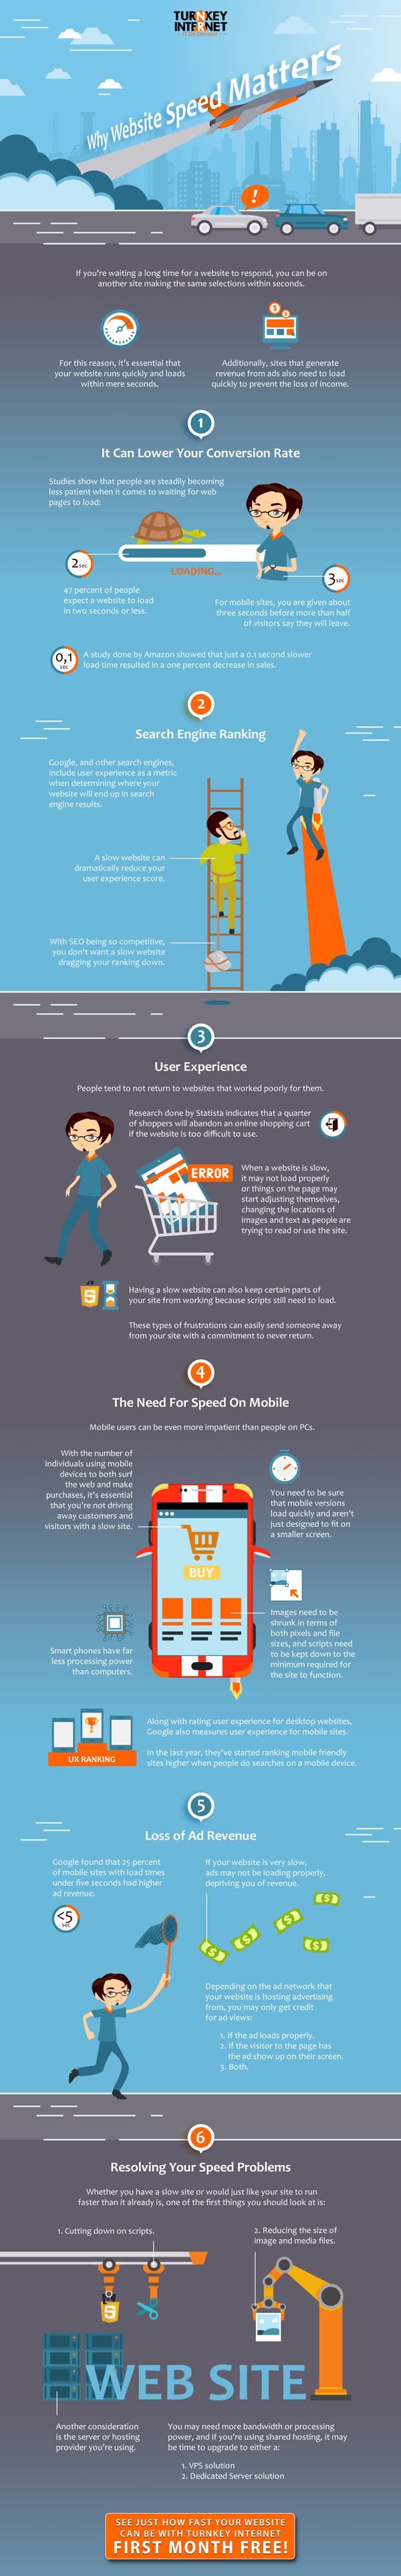 Why Website Speed Matters - Infographic